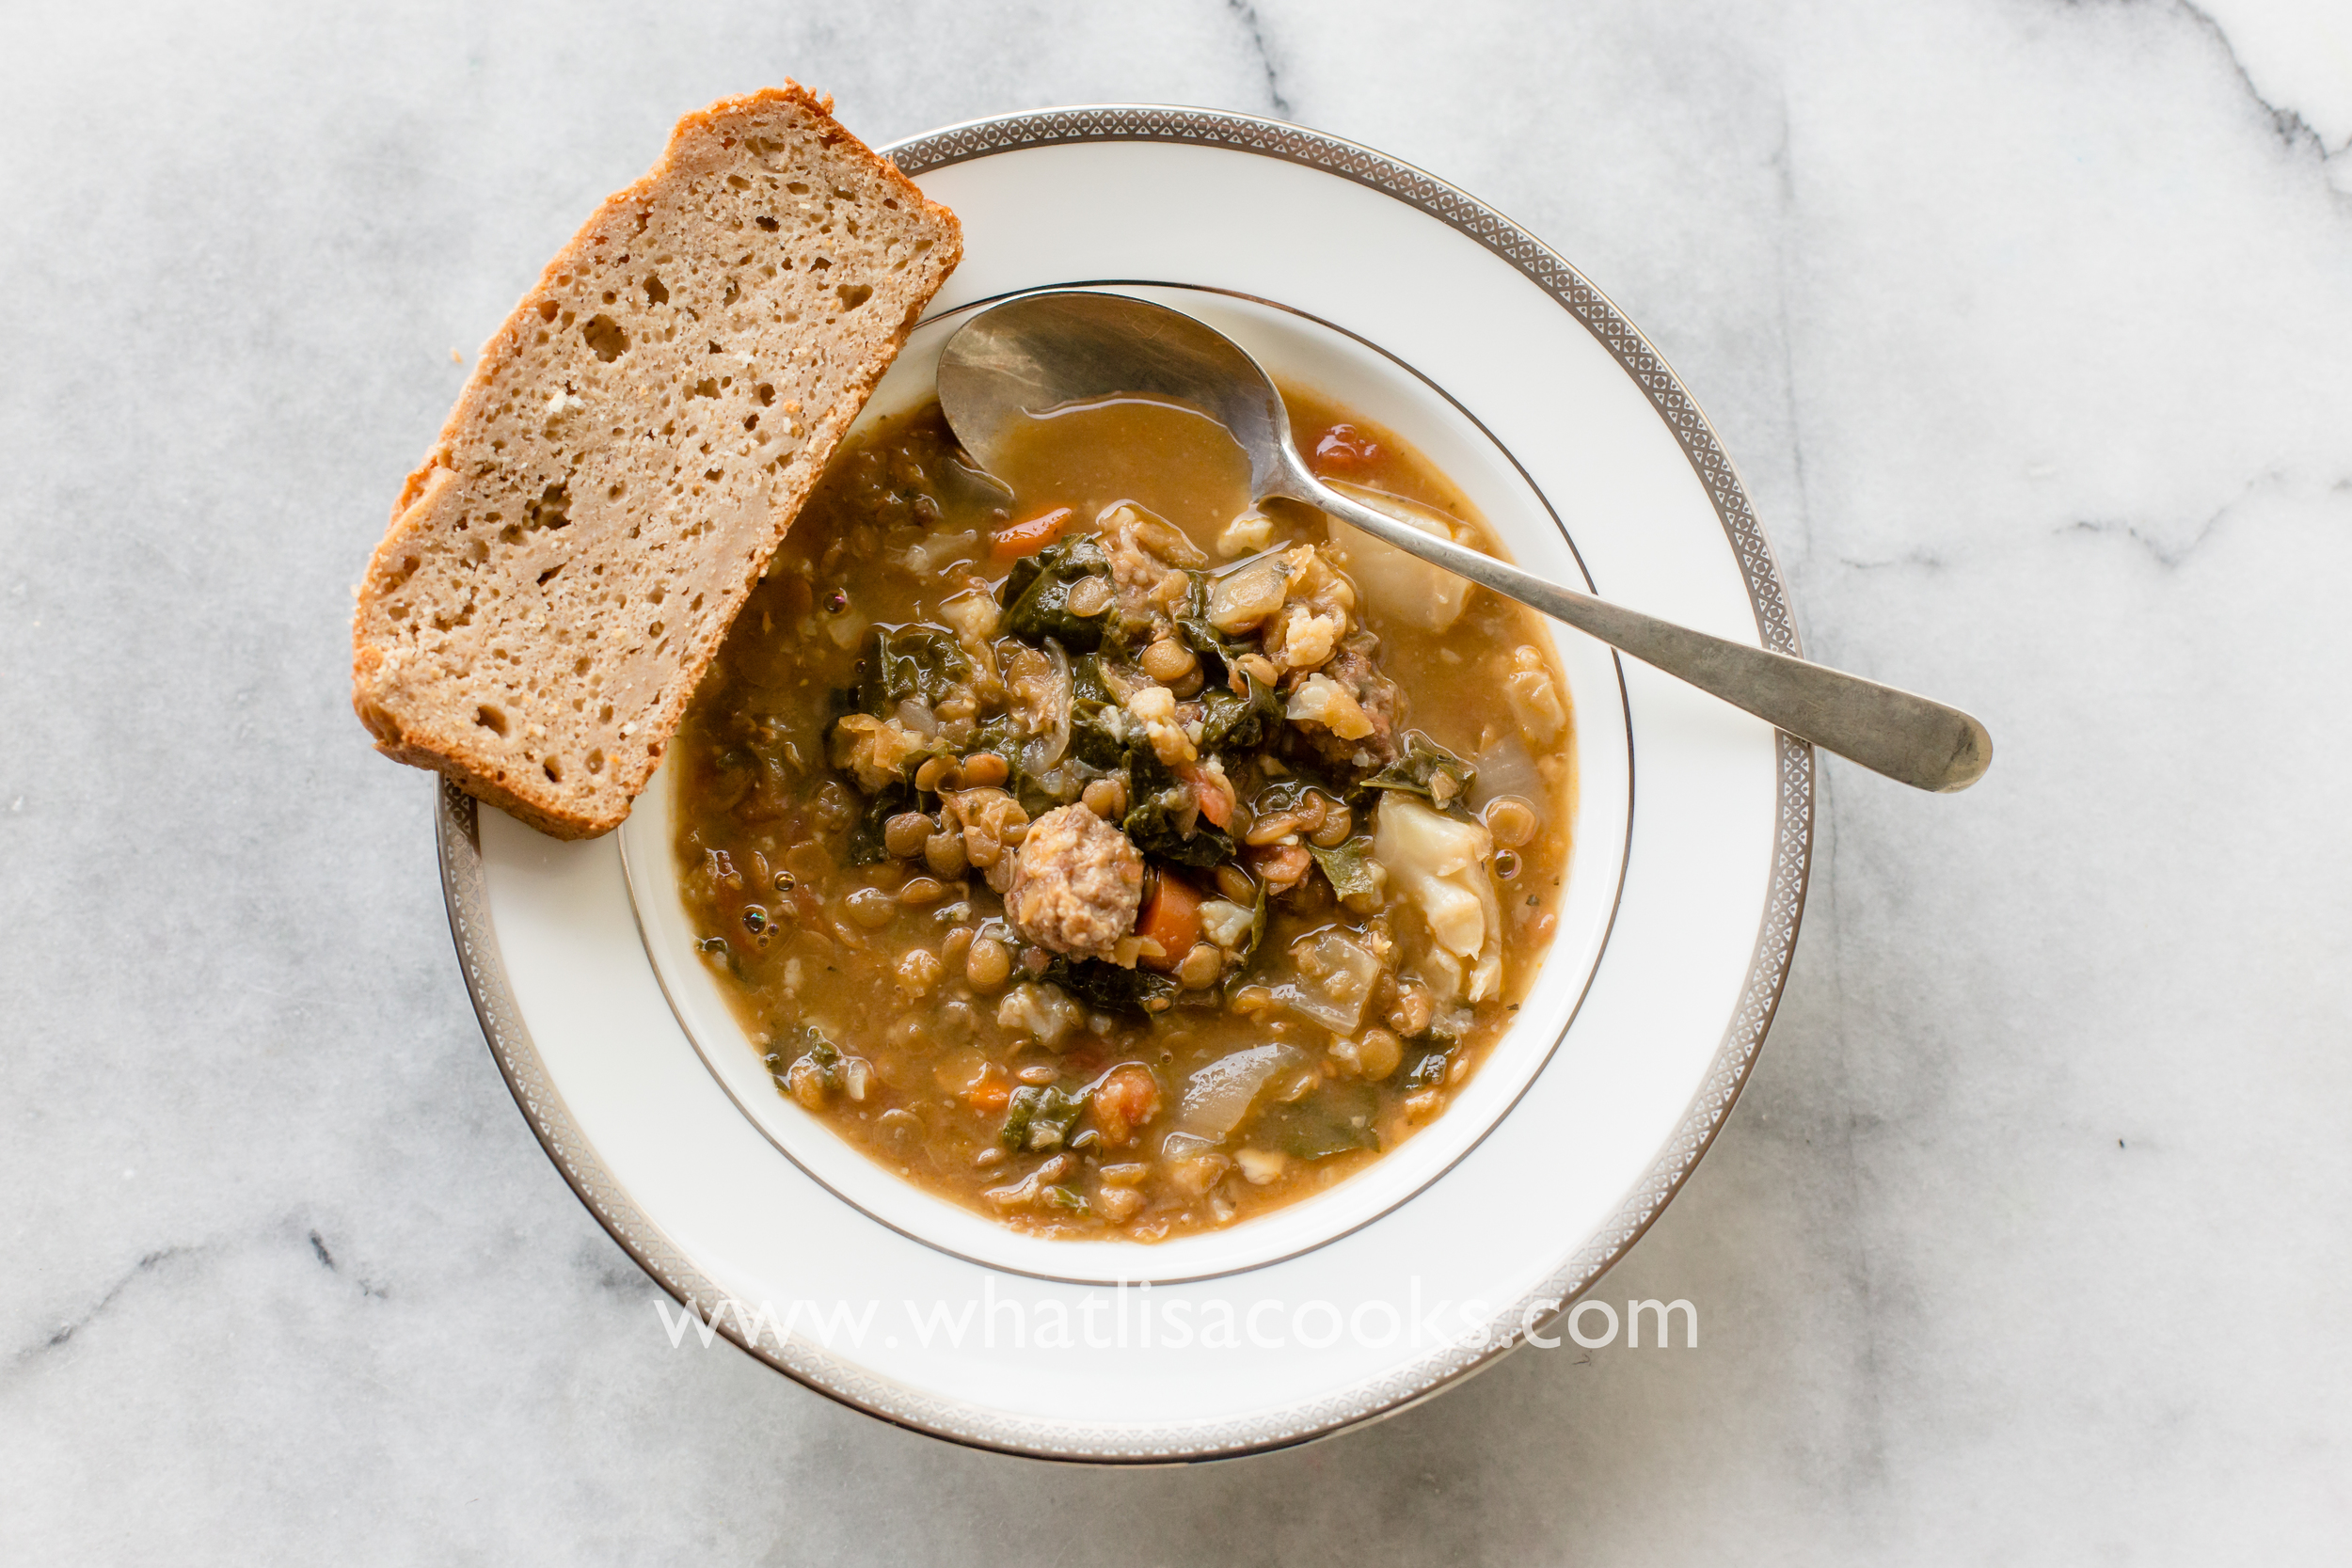 Easy weeknight lentil and sausage soup recipe, made in the slow cooker. From whatlisacooks.com